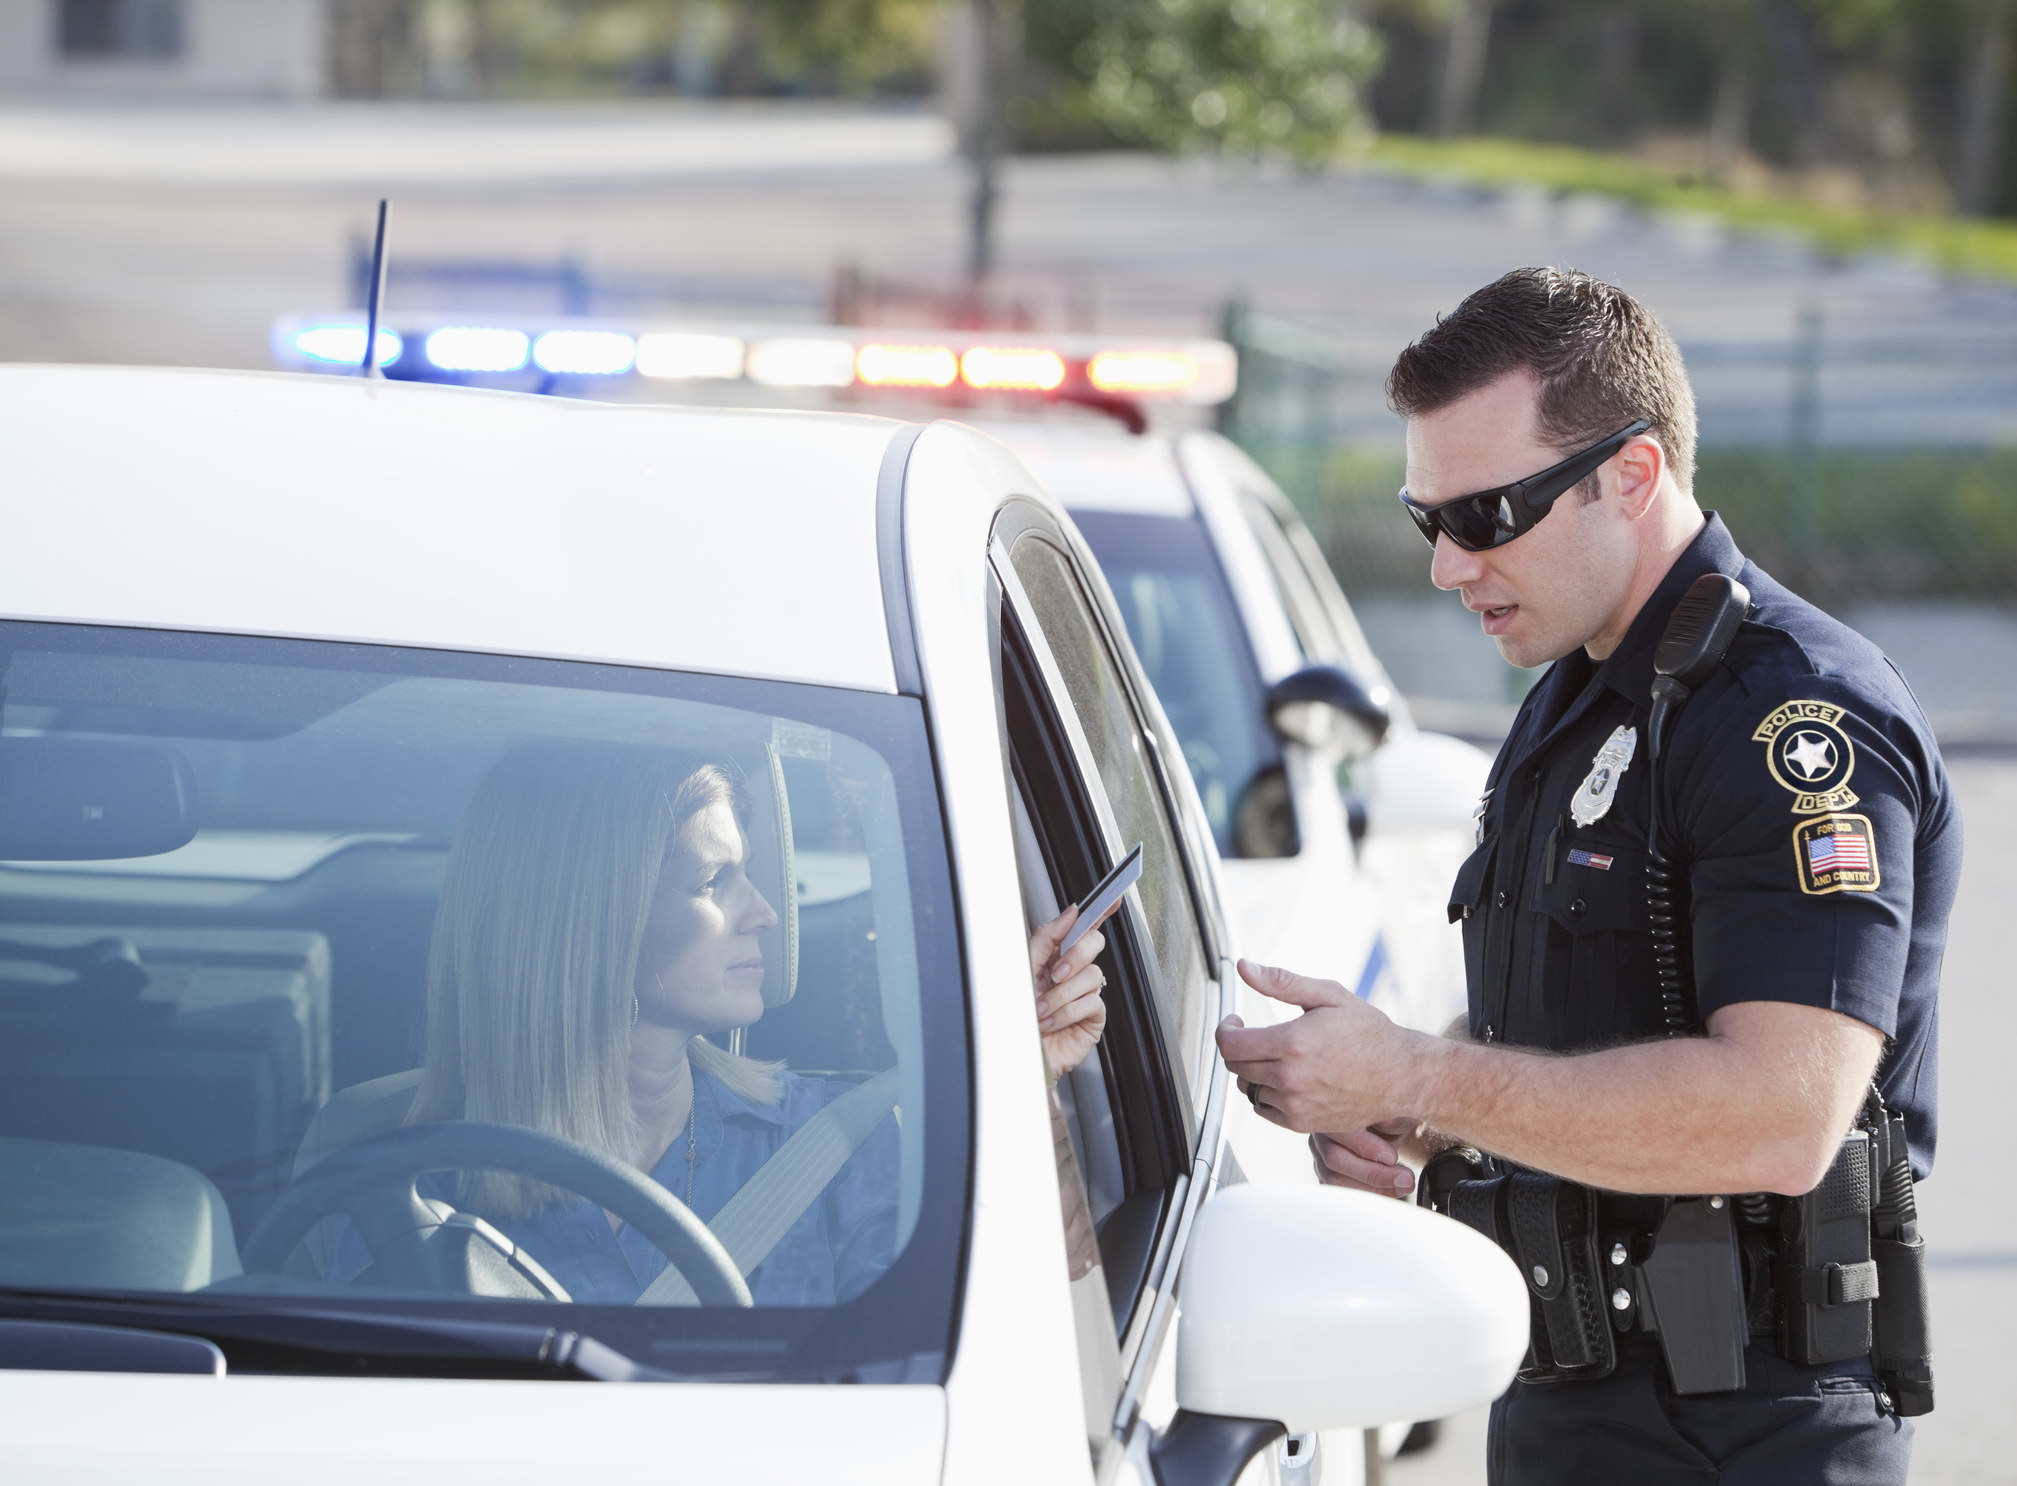 Police officer getting a driver's information